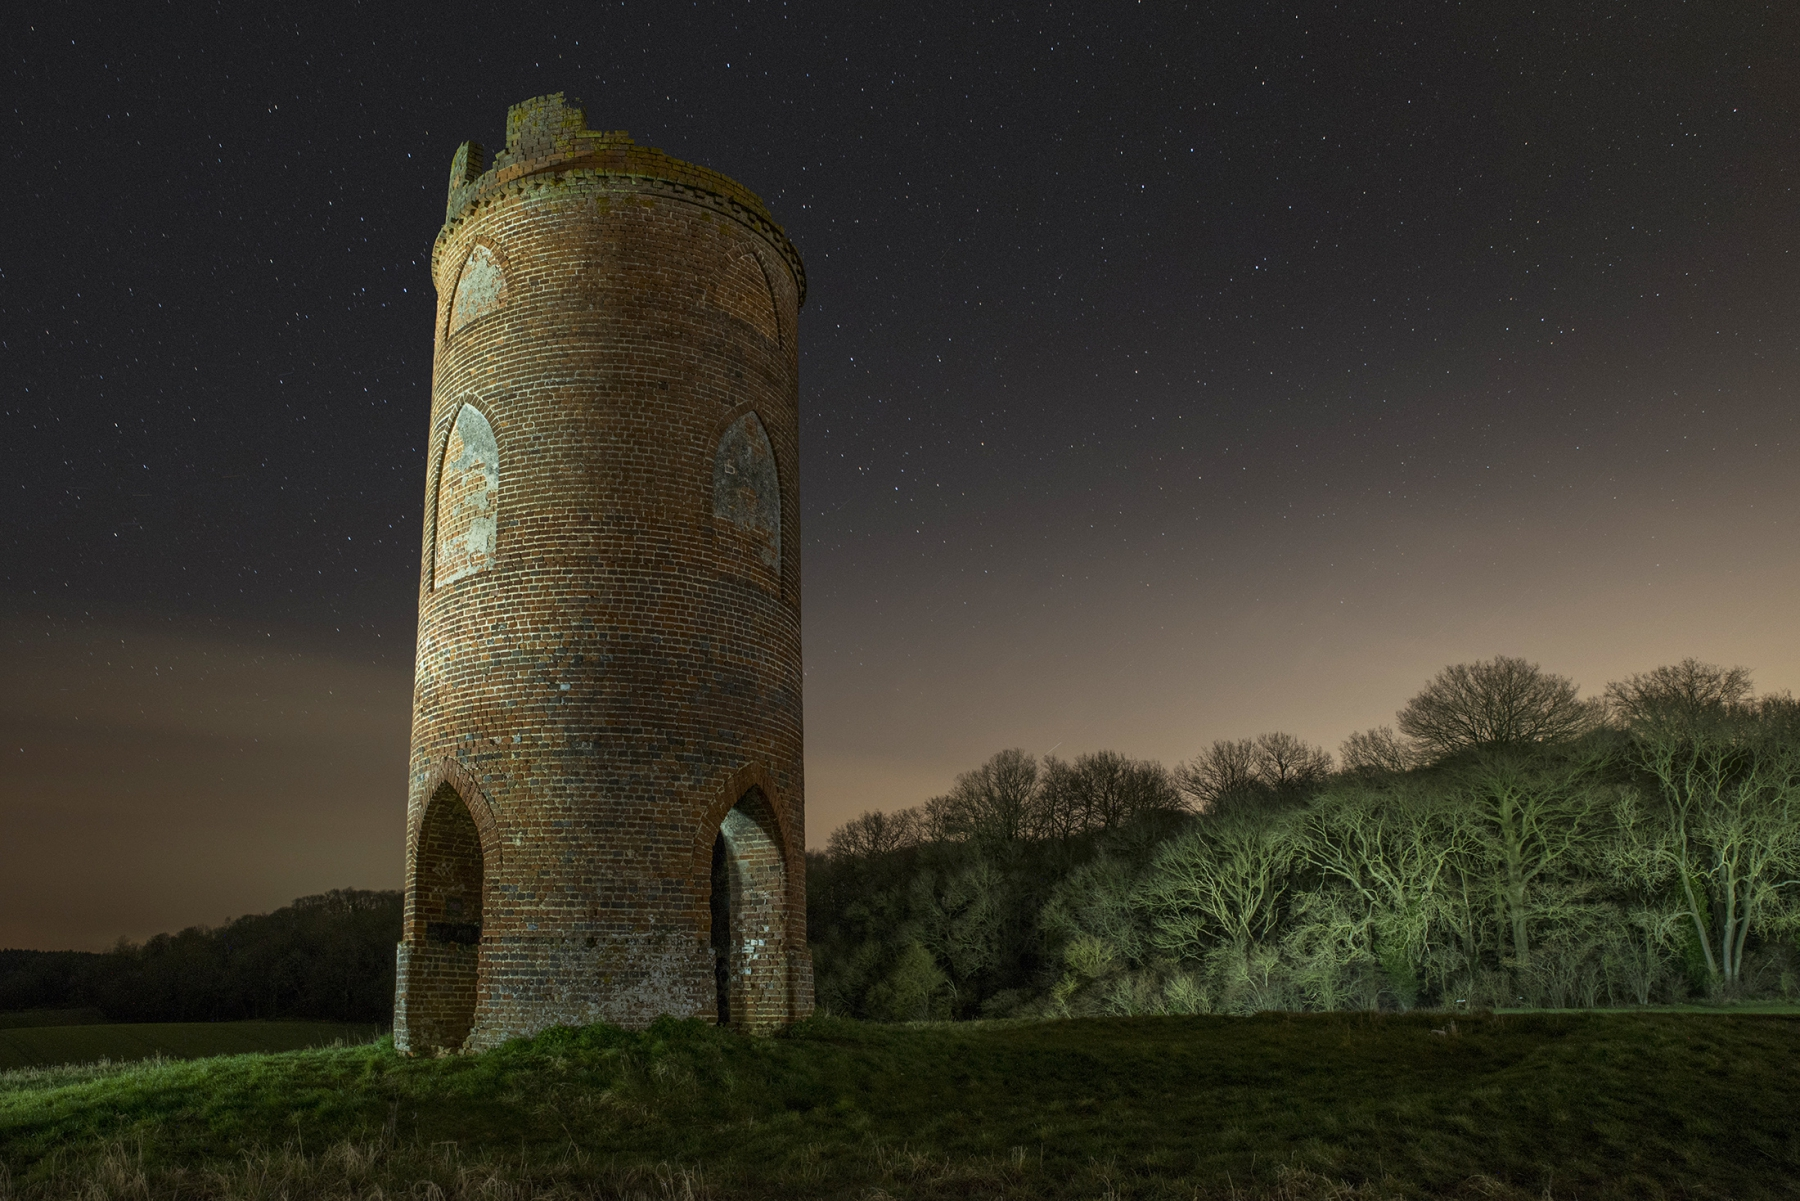 Wilders-Folly-at-night-110518